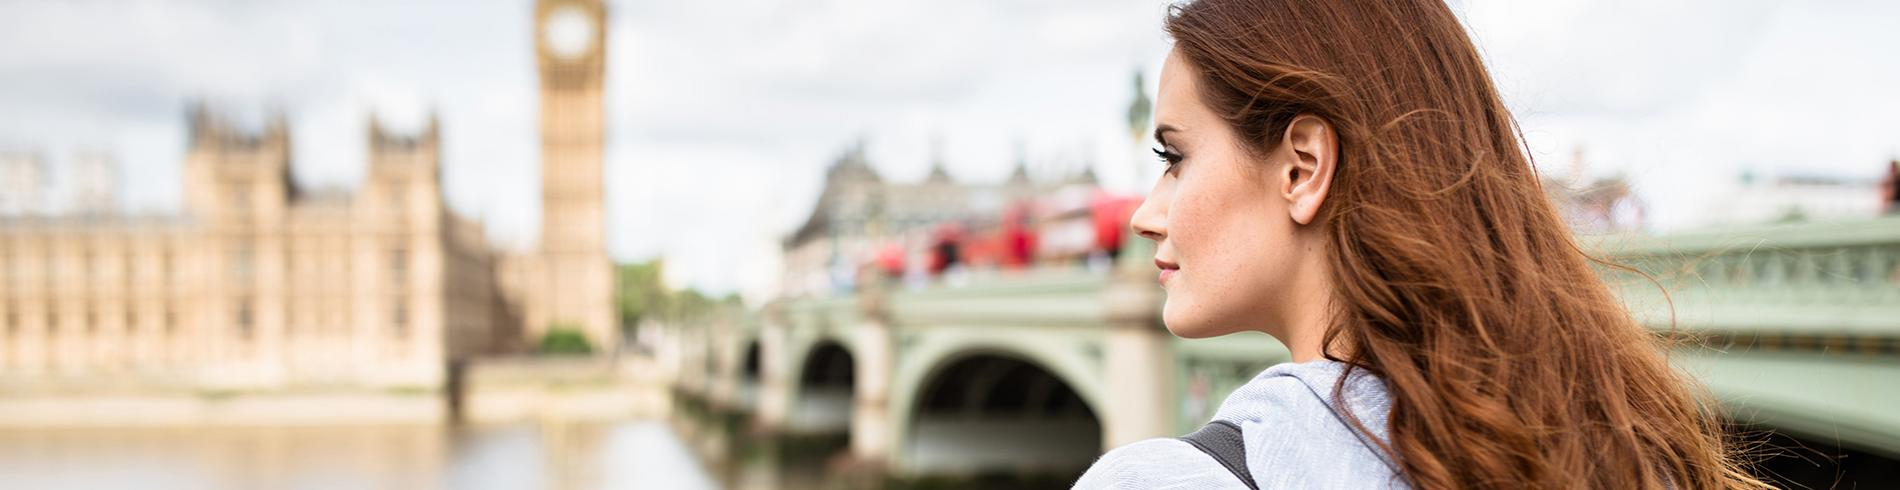 girl looking over the Parliament in London